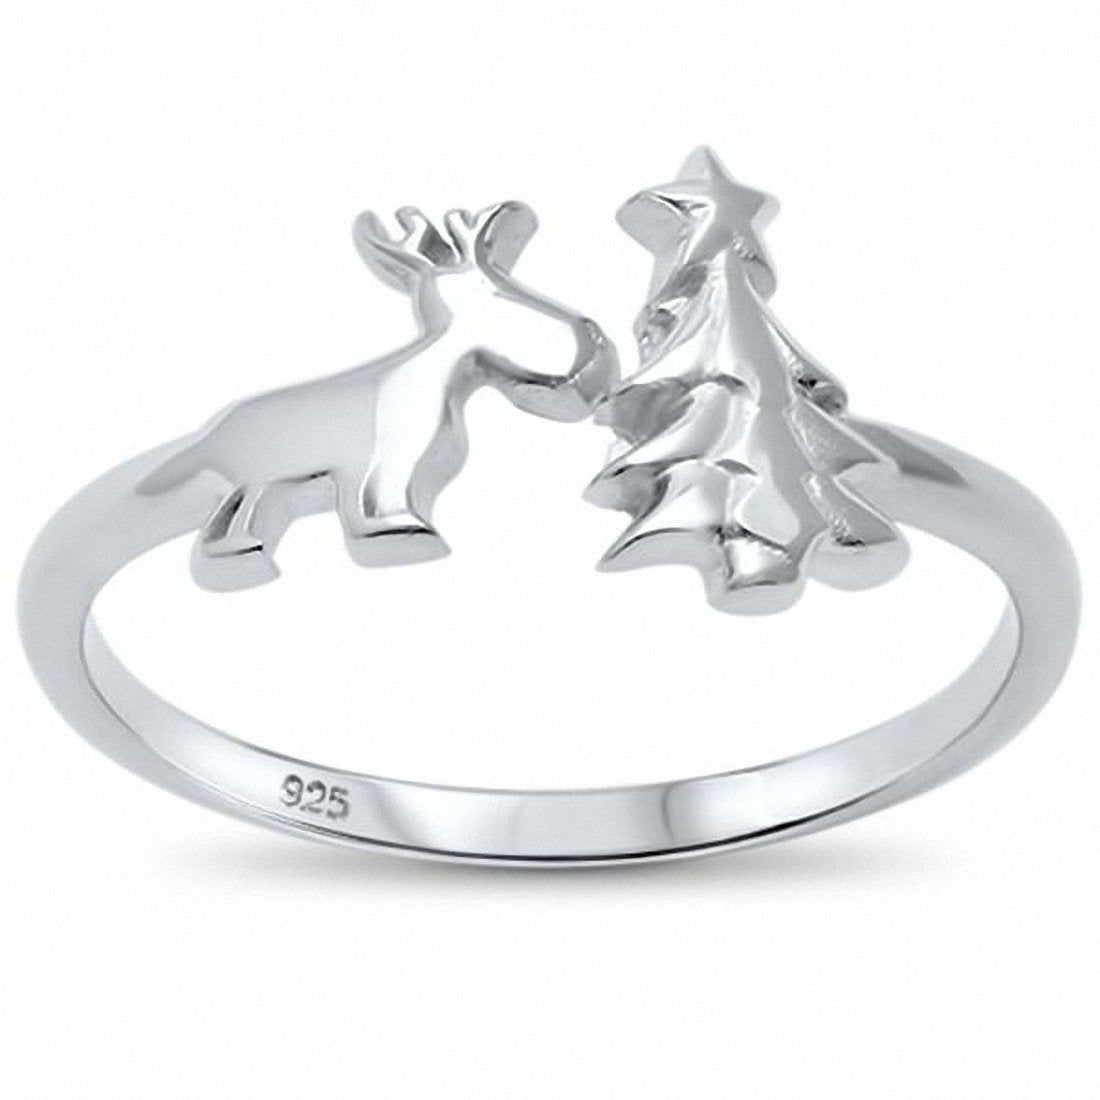 Christmass Tree Reindeer Ring Band 925 Sterling Silver Choose Color